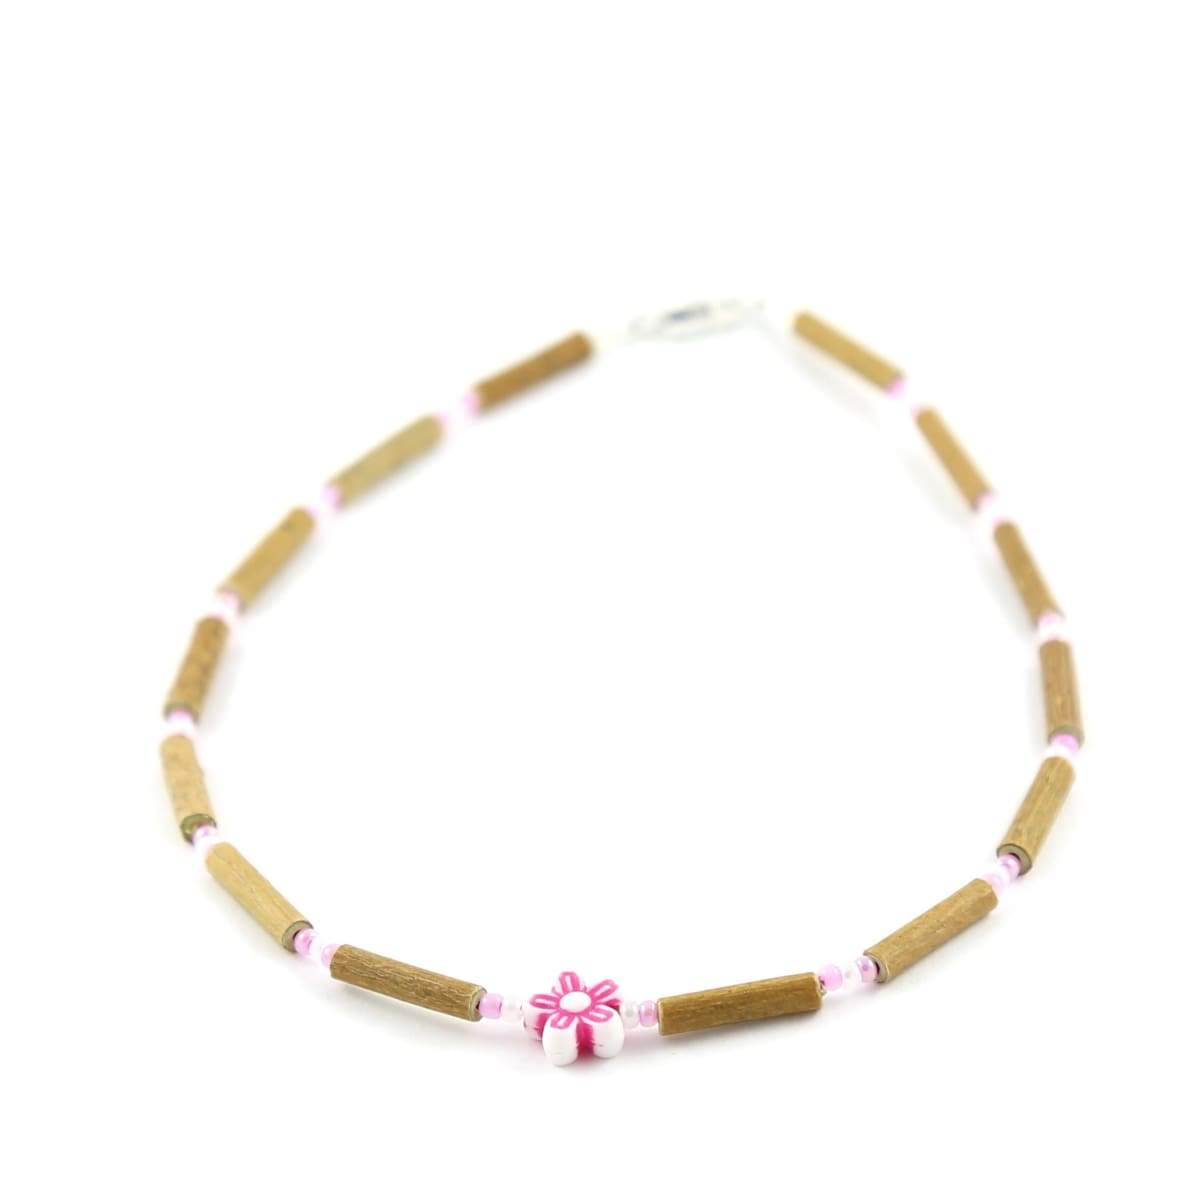 Hazelwood Pink Flower - 11 Necklace - Barrel Twist Clasp - Hazelwood Jewelry